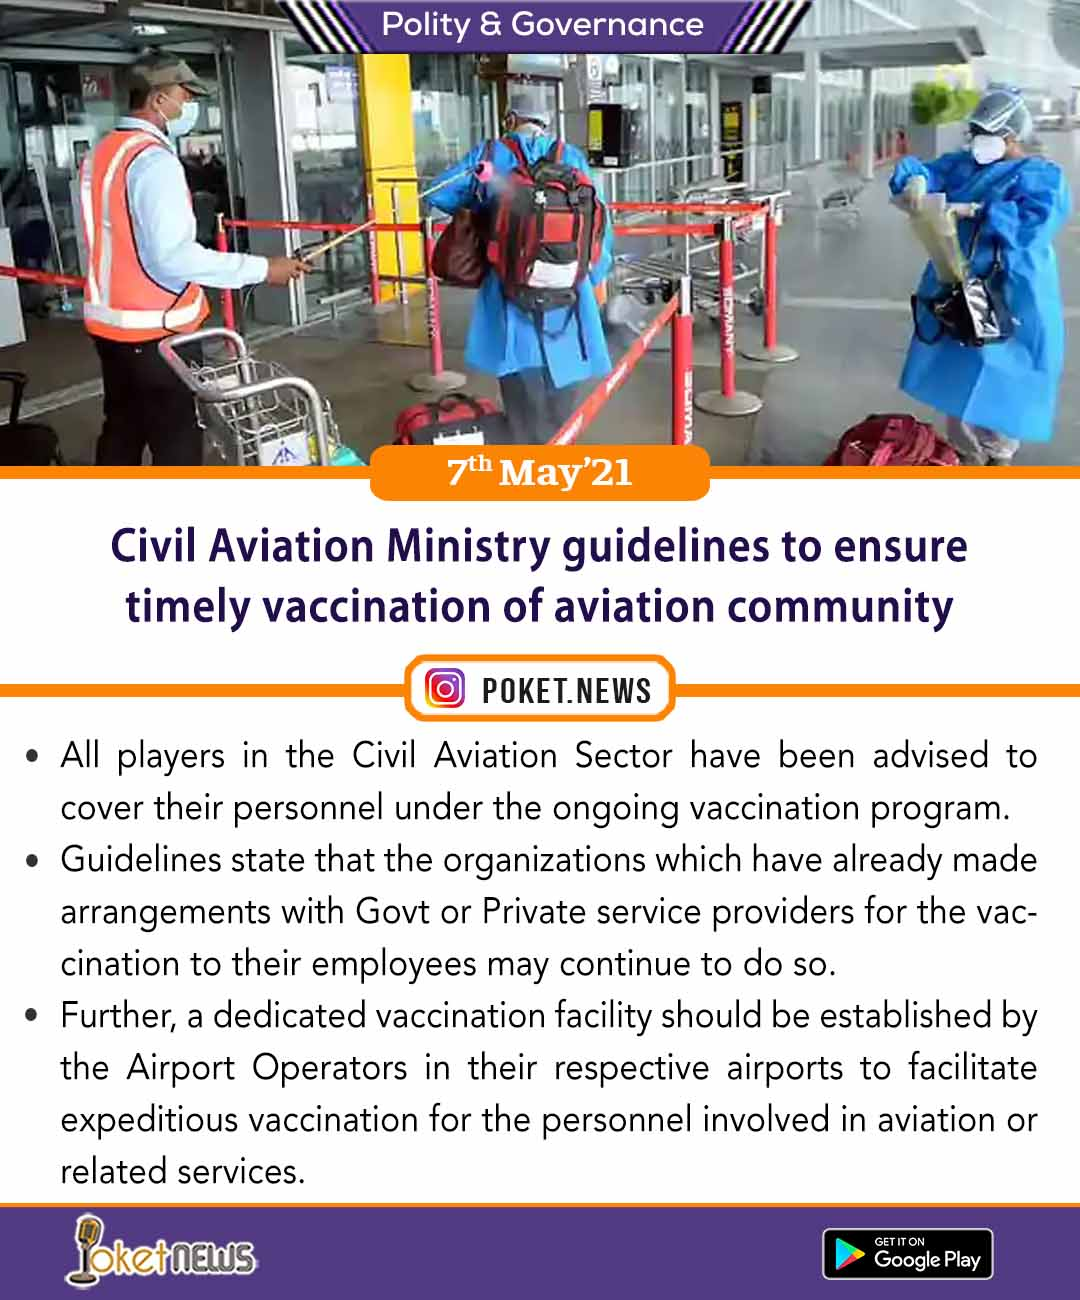 Civil Aviation Ministry guidelines to ensure timely vaccination of aviation community